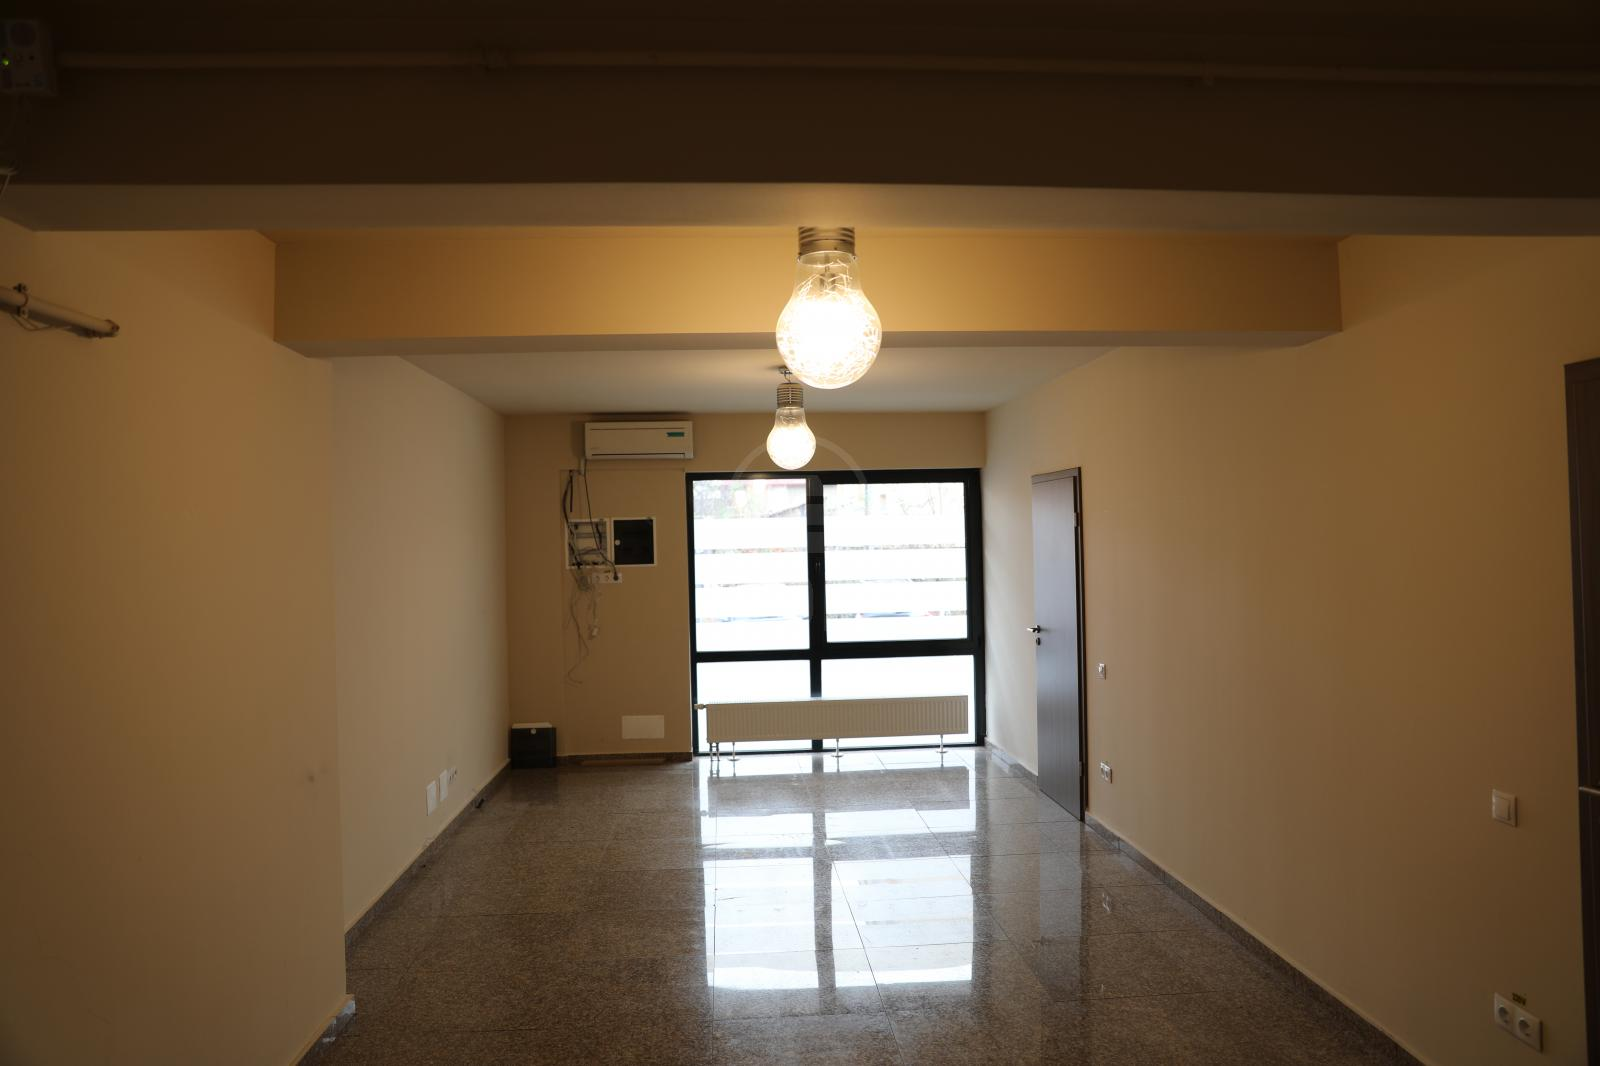 Commercial space for sale 3 rooms, SCCJ297529-13